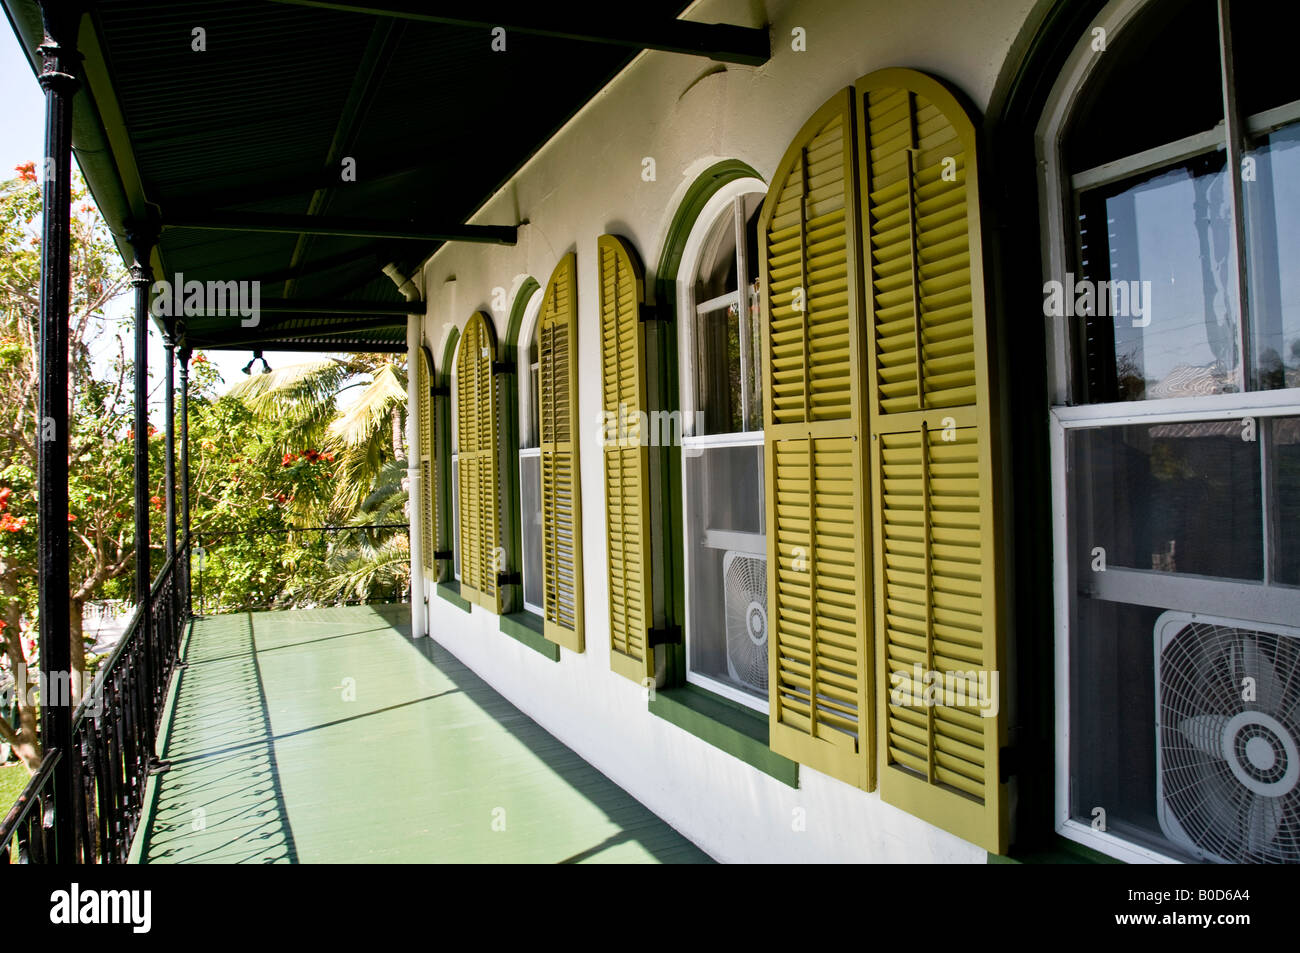 Ernest Hemingway Home and Museum in Whitehead Street in the Old Town Key West Florida USA Stock Photo